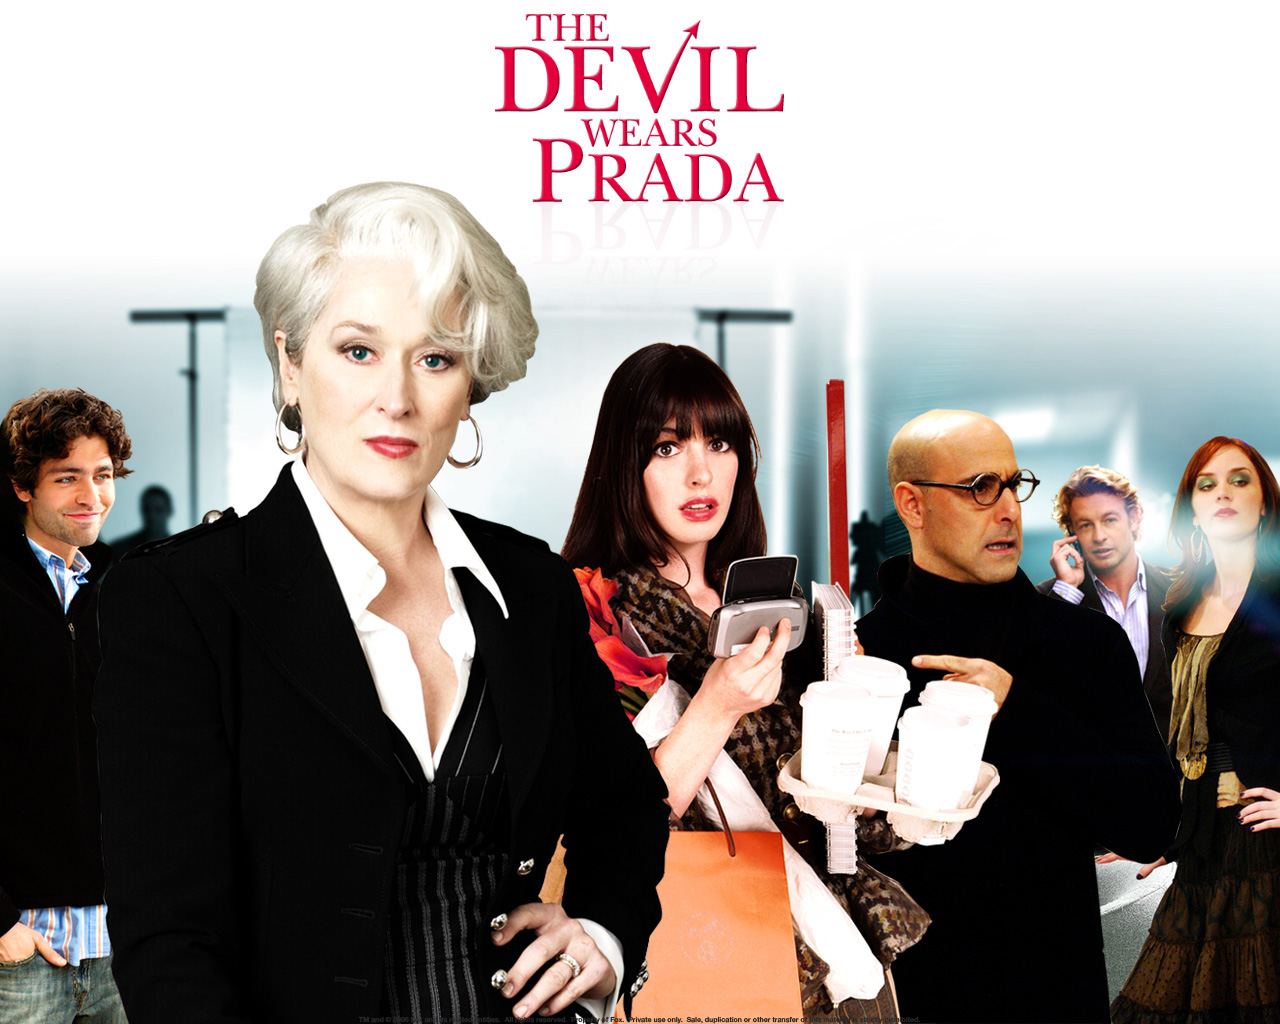 Revenge Wears Prada The Devil Returns